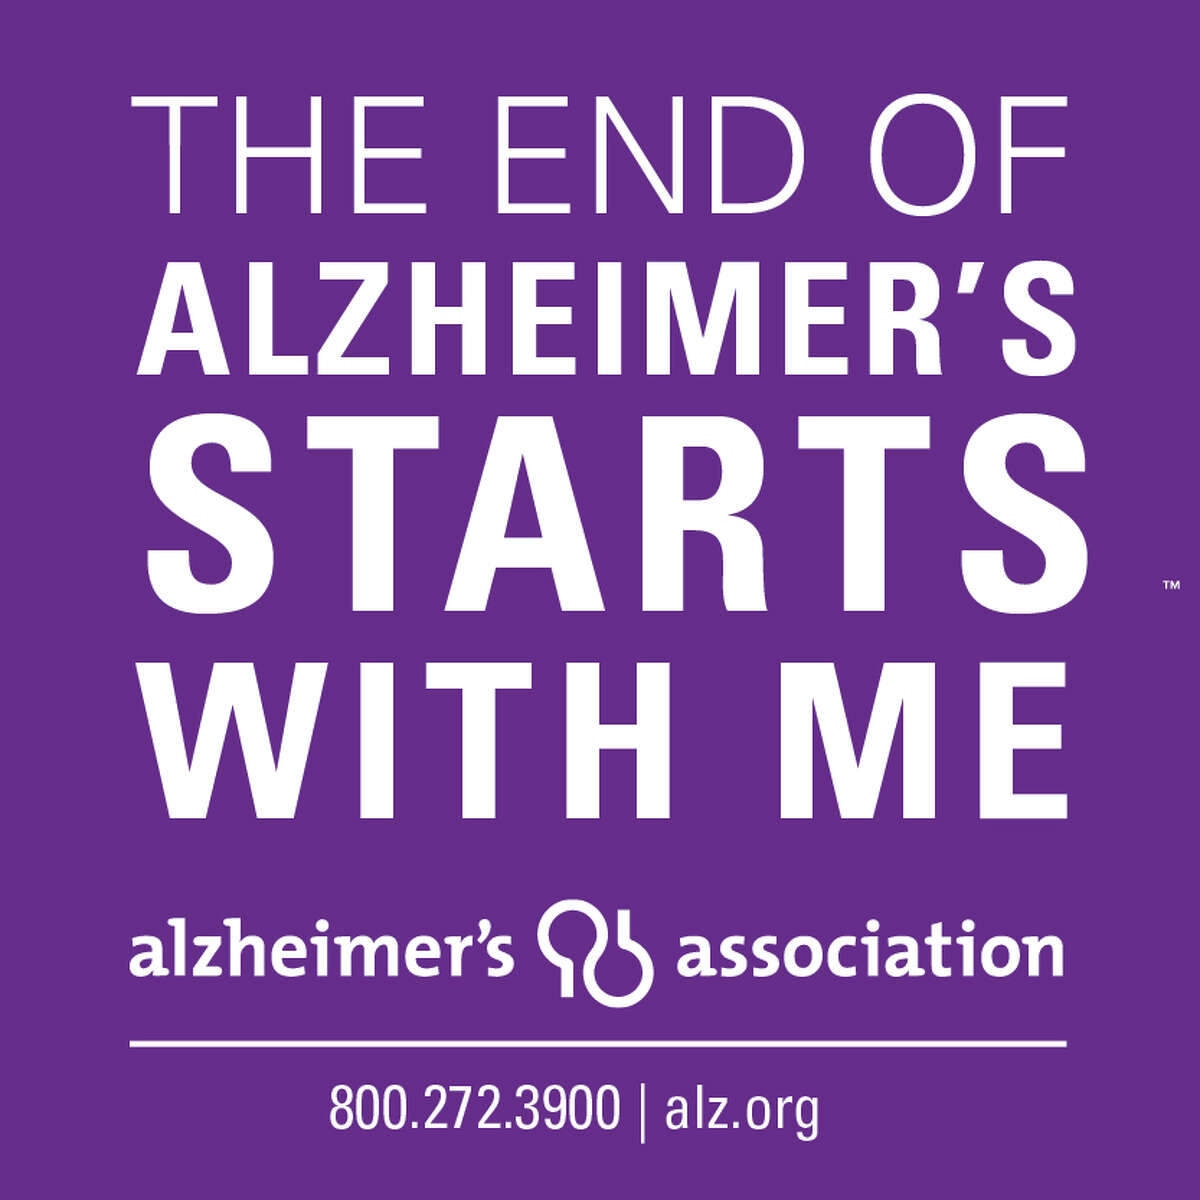 Today more than 5 million Americans are living with Alzheimer's. By 2050, it could be as high as 16 million. CLICK TO LEARN MORE or REGISTER!